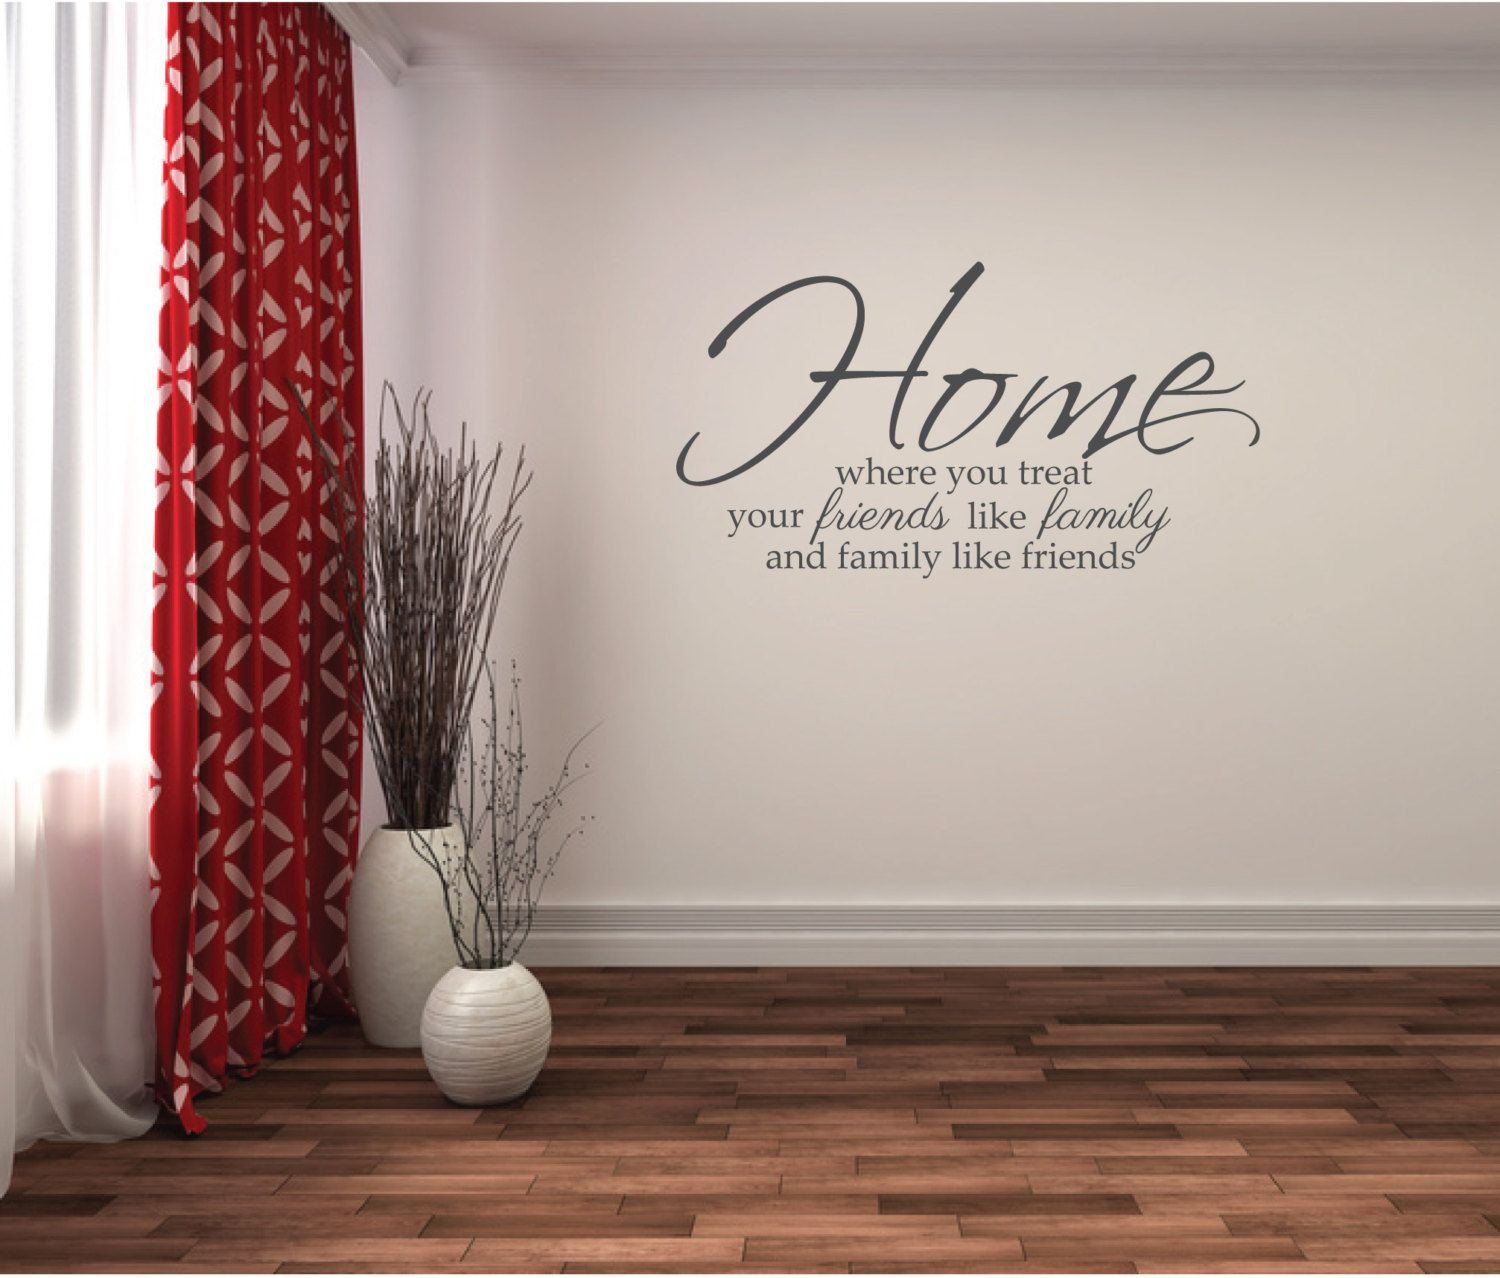 Wall Sticker Family Quote Home Friends Family Wall Decor Words Saying Family Wall Decor Wall Stickers Family Living Room Decals